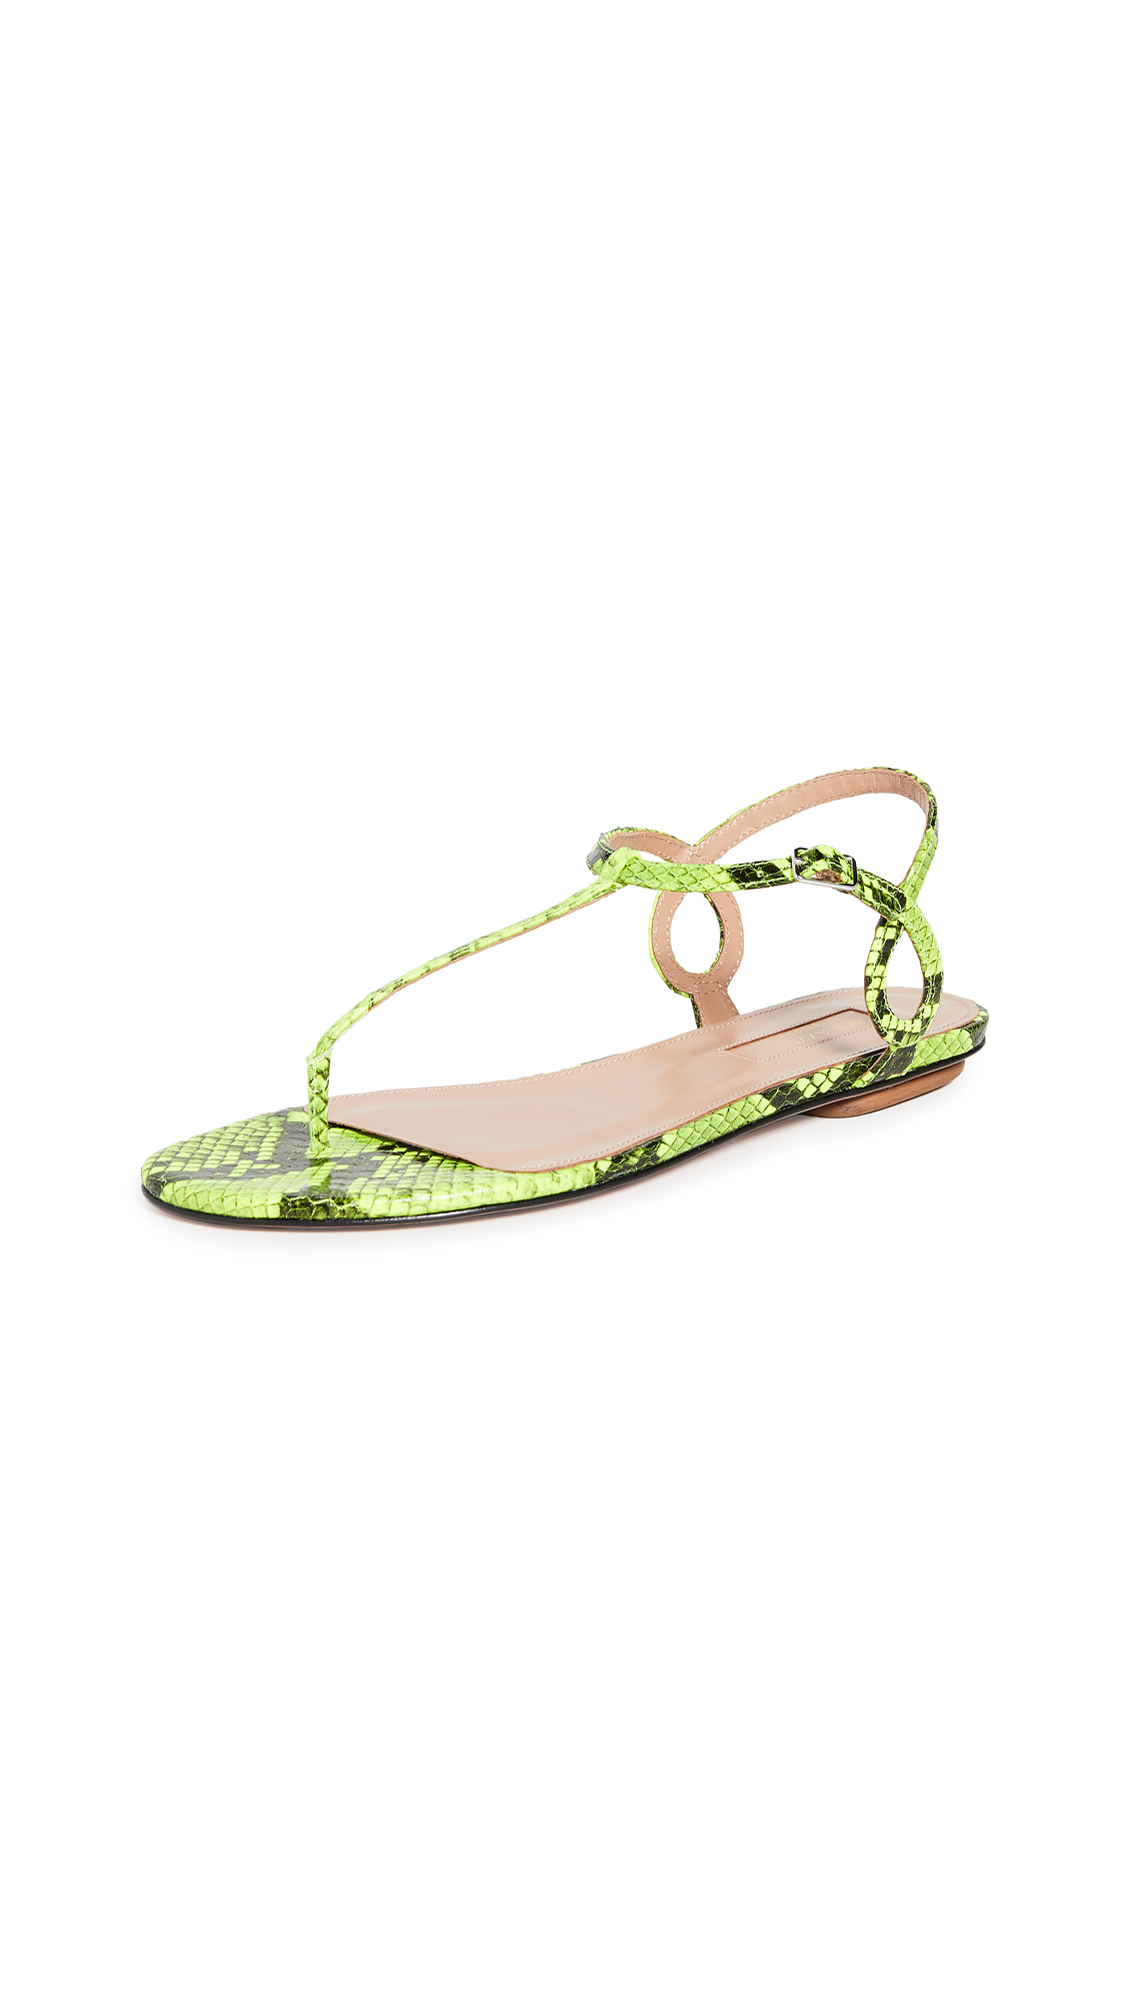 Buy Aquazzura Almost Bare Sandal Flats online, shop Aquazzura